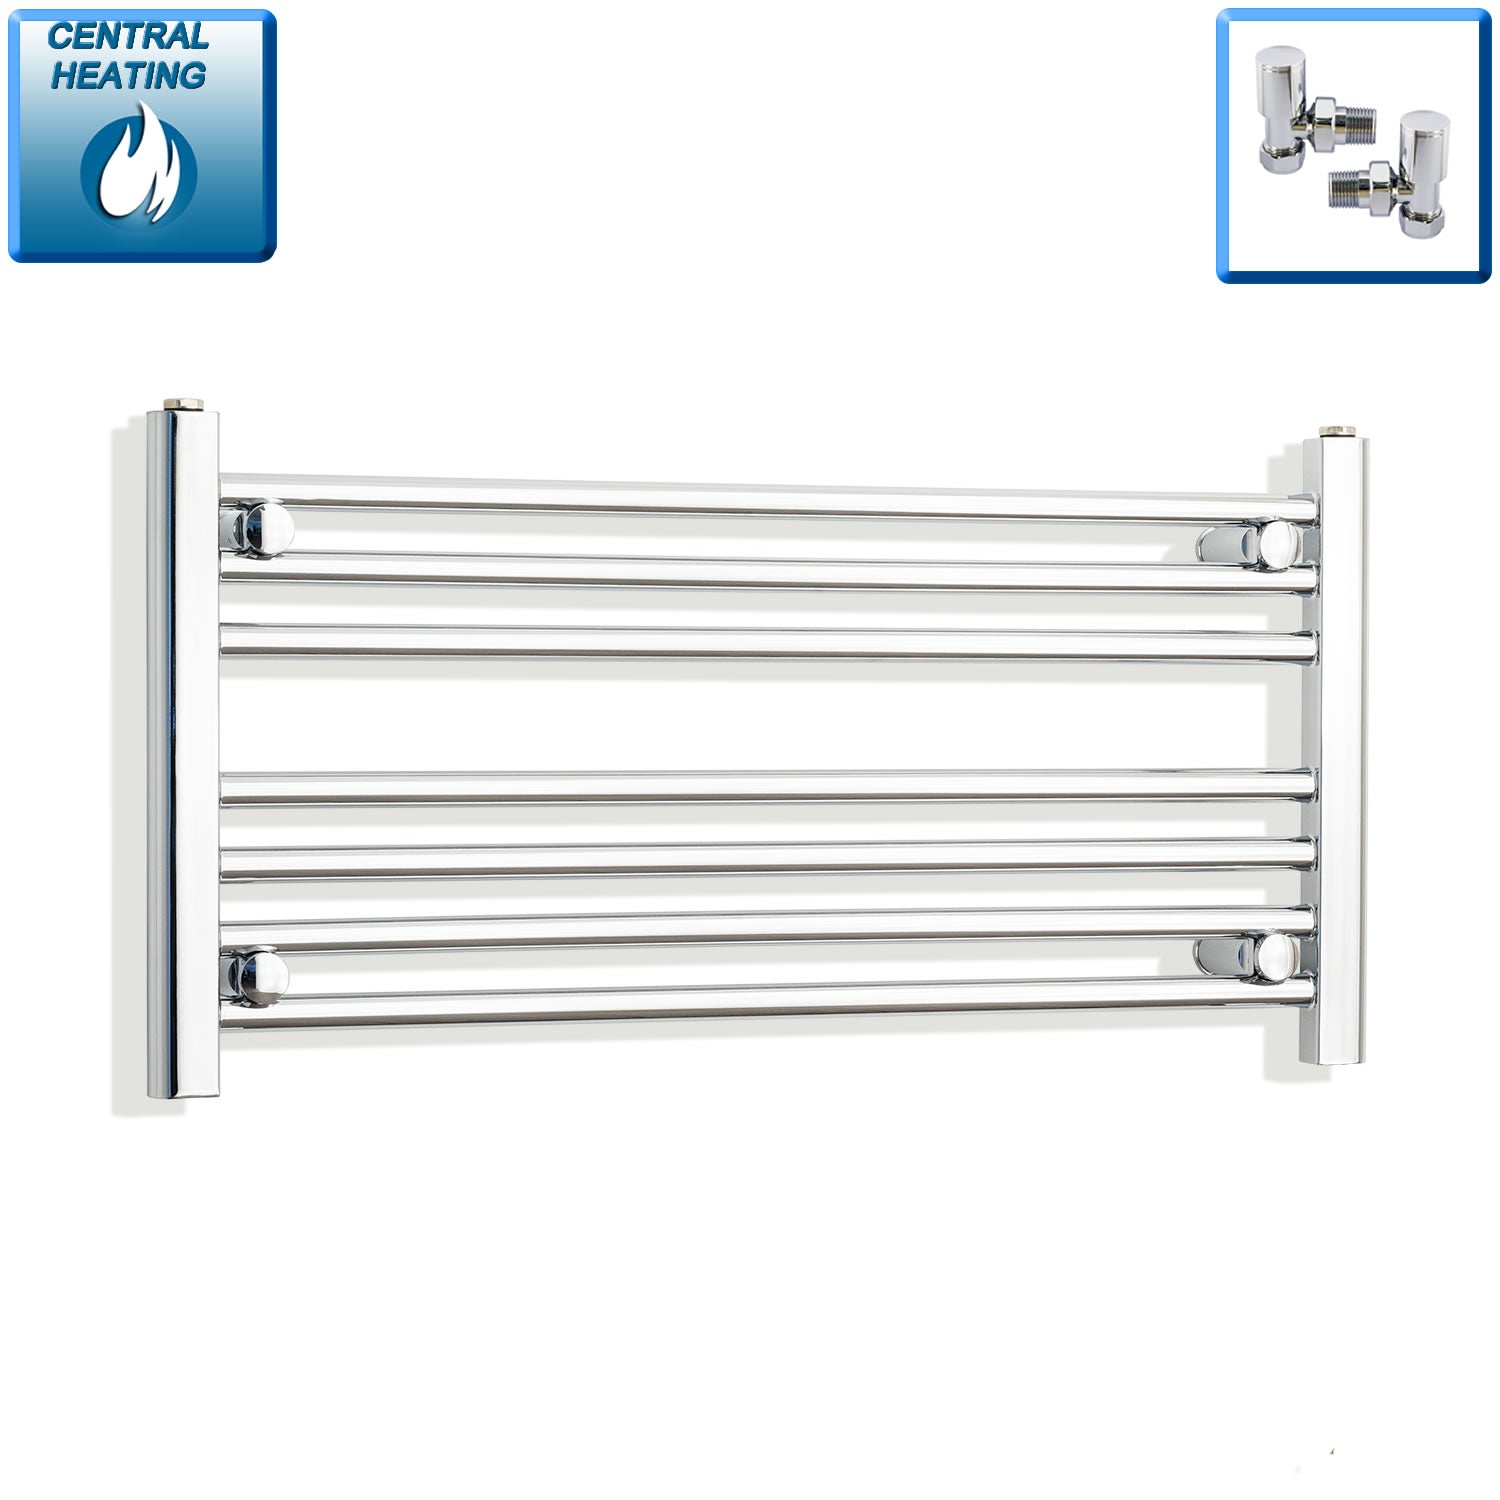 800mm Wide 400mm High Chrome Towel Rail Radiator With Angled Valve